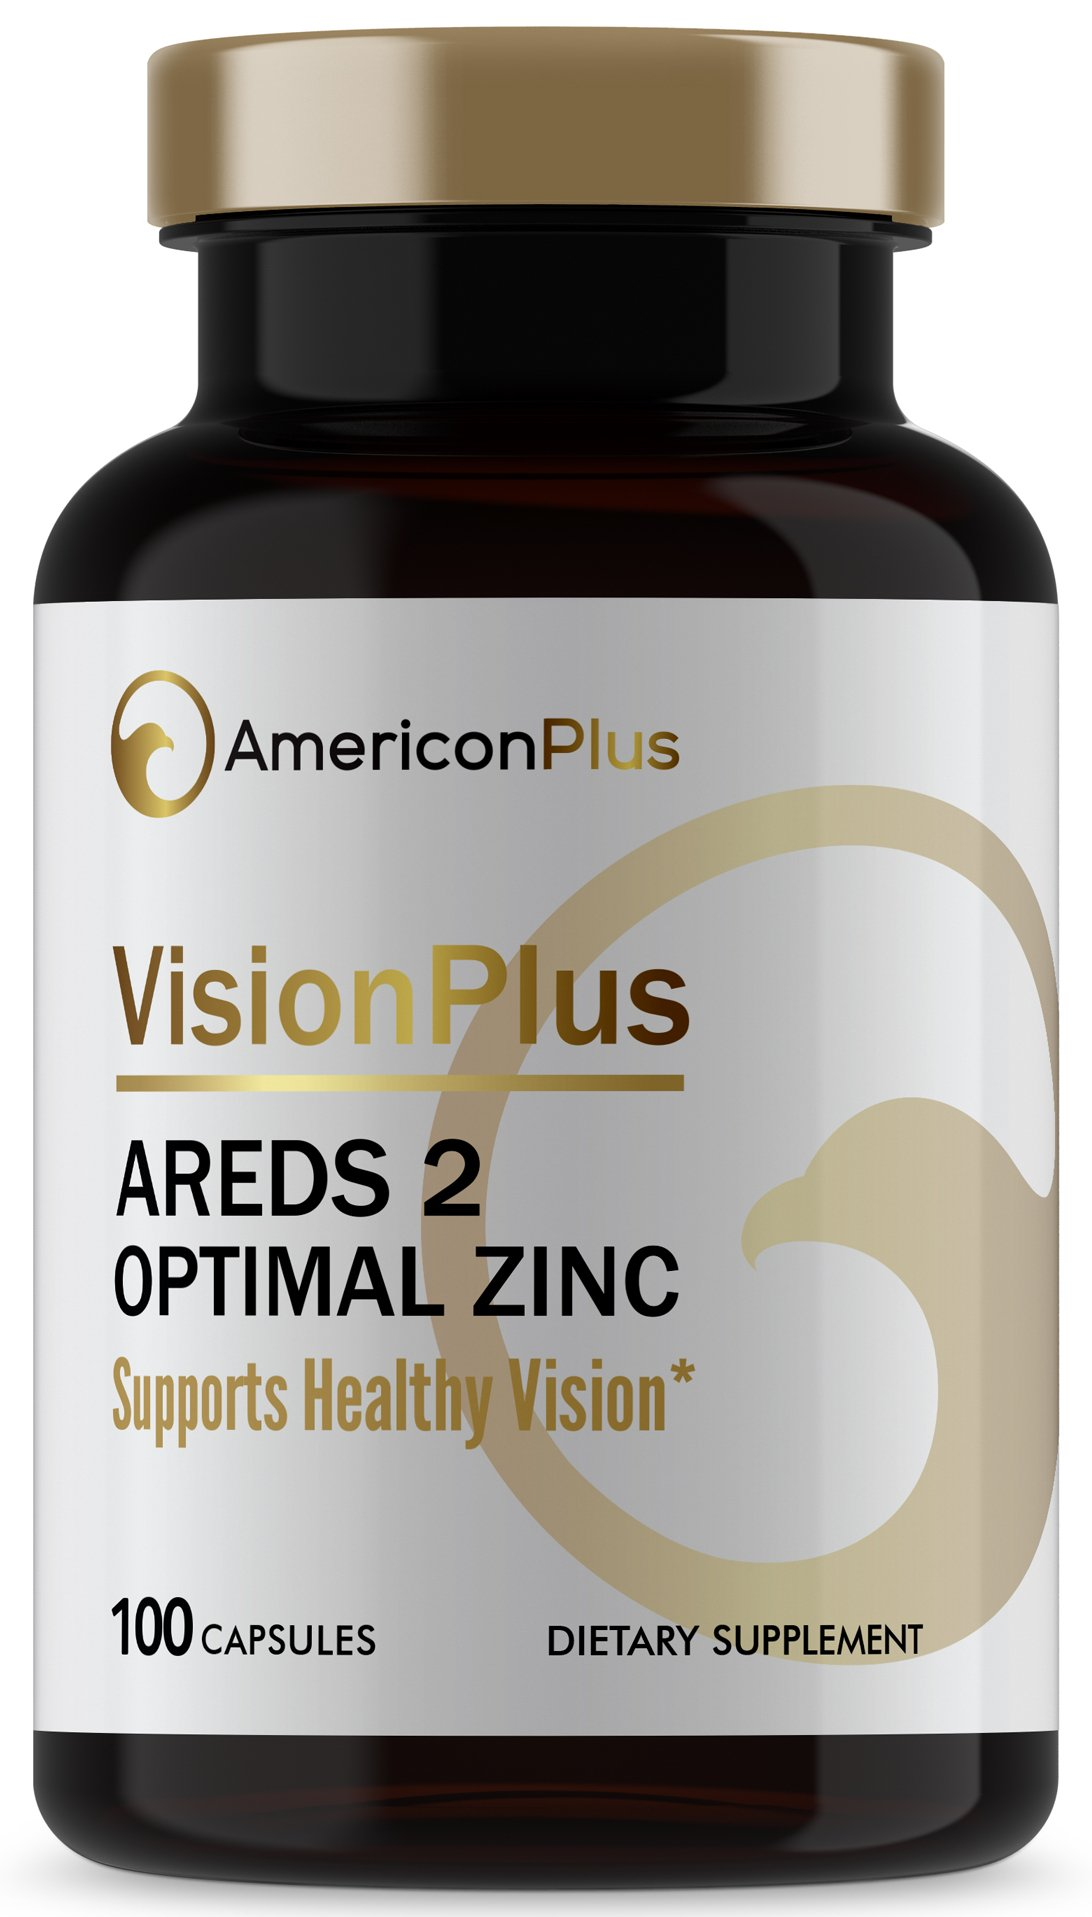 AREDS 2 Eye Vitamins for Macular Health with Maximum Safe Zinc; Based on AREDS and AREDS 2 Clinical Studies; AREDS2 Vitamins Improved for Smokers Over AREDS Vitamins; 100 Capsules